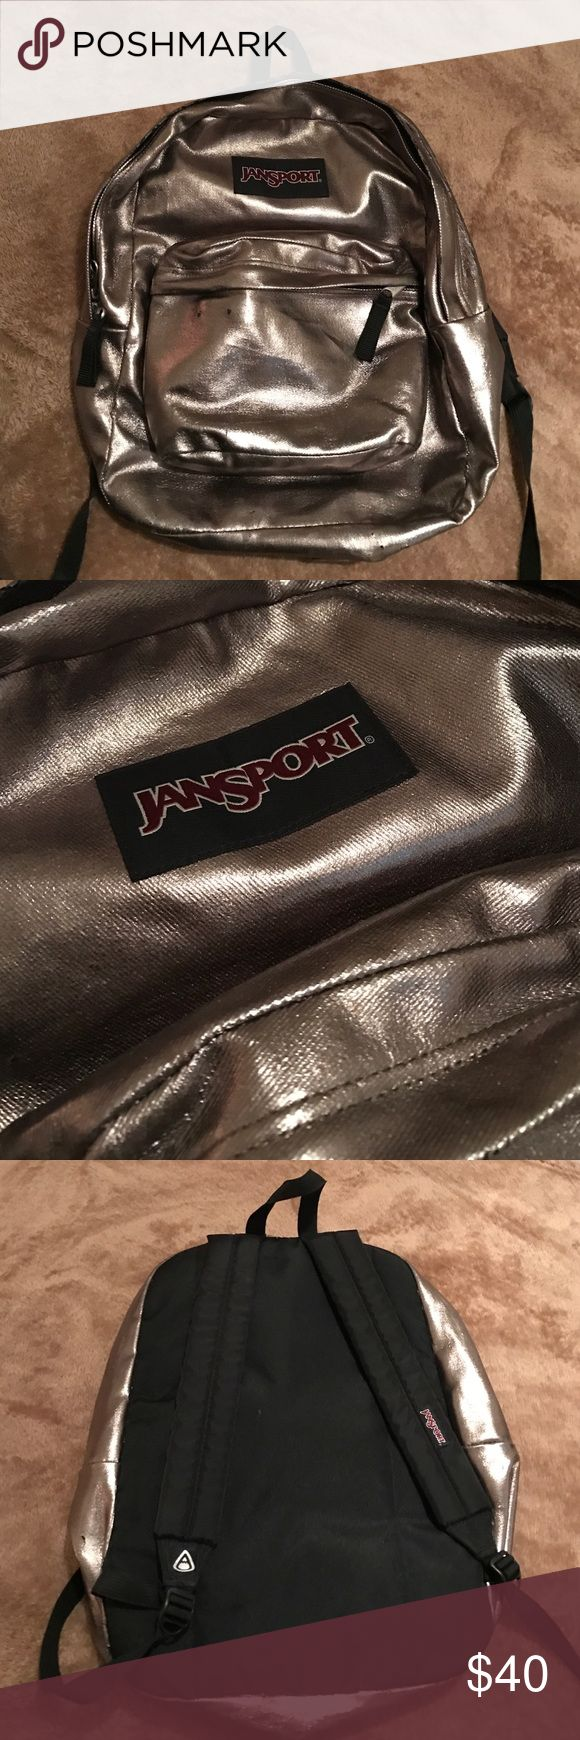 Jansport Metallic Backpack Slightly worn, in super good condition. Two compartments. Black adjustable straps. Jansport Bags Backpacks